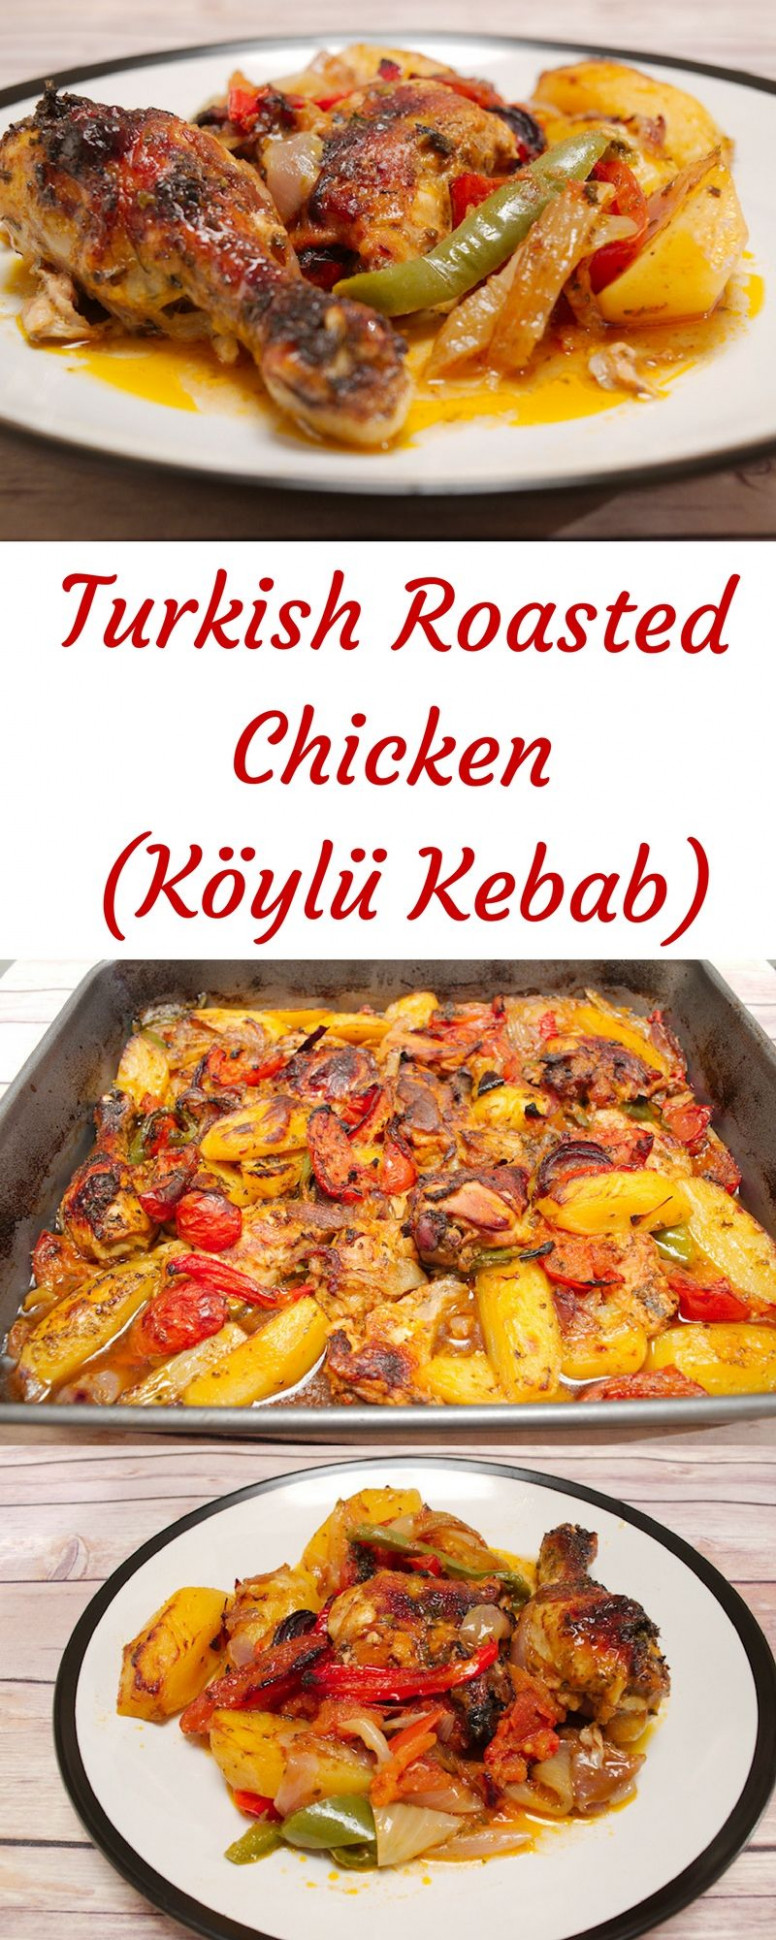 Slowly-Roasted Turkish Chicken with Vegetables (Köylü Kebab) - turkish food recipes